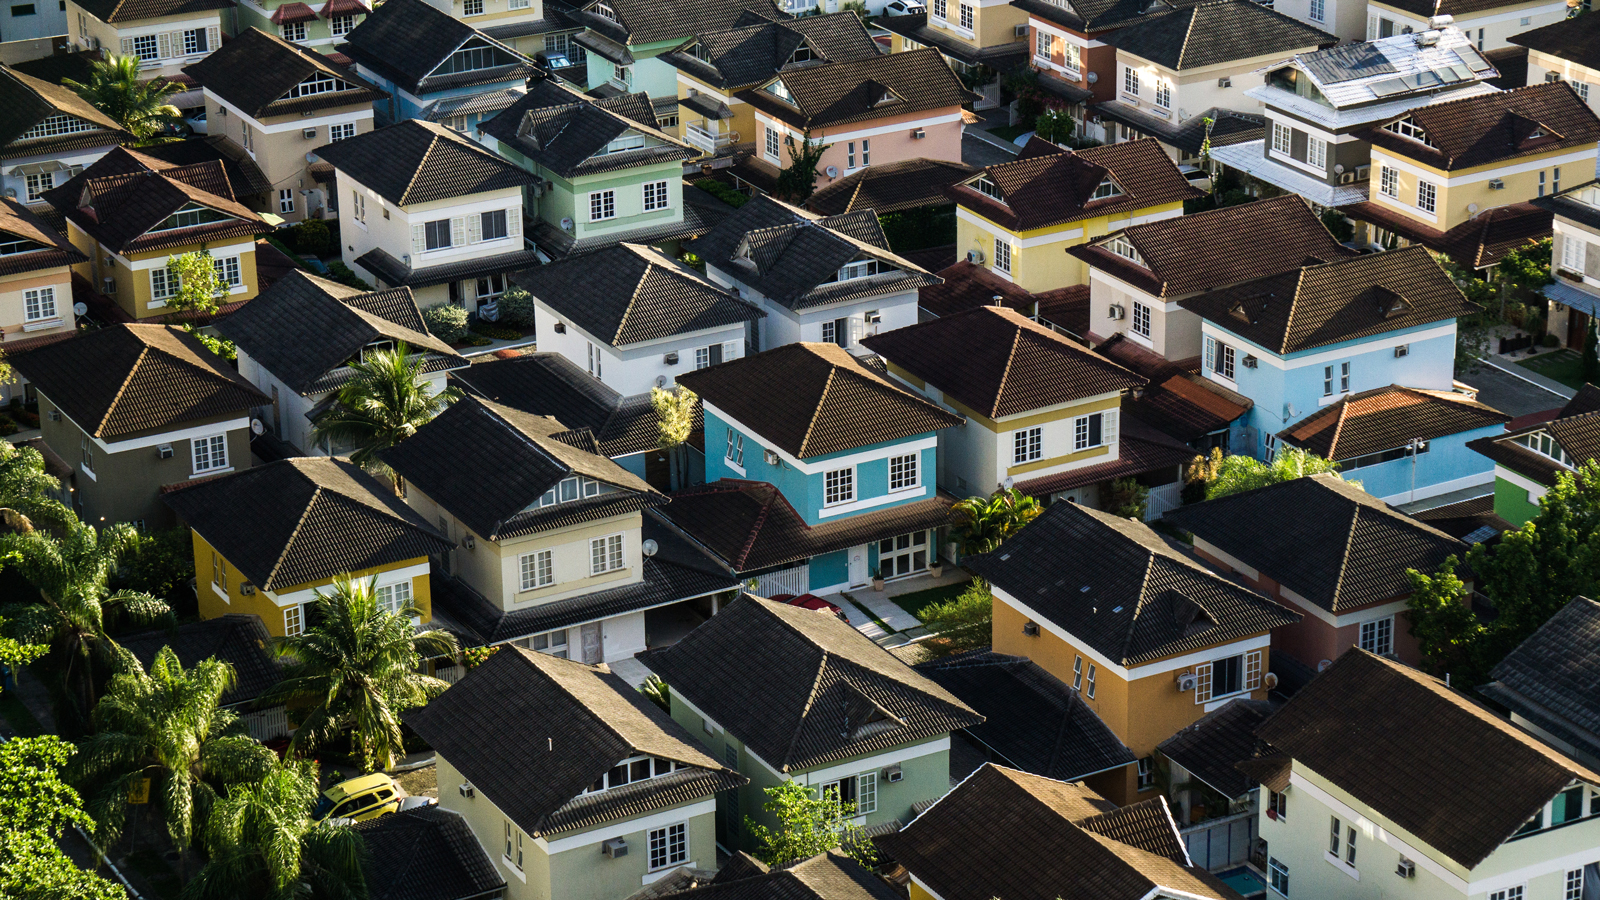 How you feel about your neighborhood depends more on you than anything else